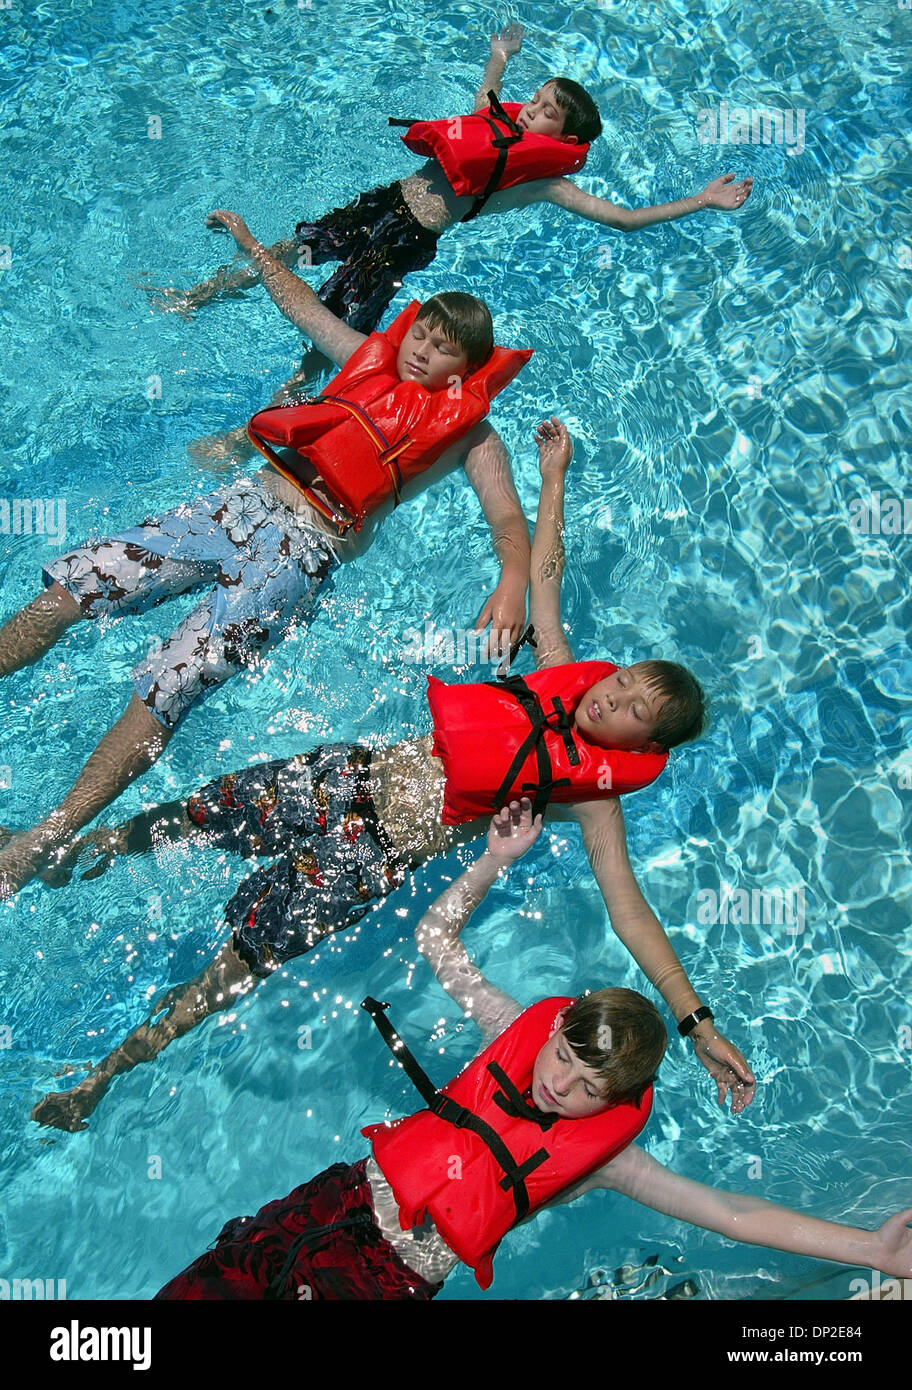 May 31, 2006; Delray Beach, FL, USA; Cub Scouts from Pack 233, (bottom to top) Cameron Keller, 10, Christopher Gibb, 10, Anthony Zaleski, 10 and Pierce Palma, 10, float on their backs wearing personal flotation devises while taking a test for their aquanaut badge at Aquacrest Pool, Wednesday afternoon.  Aquacrest pool manager Joe McNeeley administered the test which included water  - Stock Image